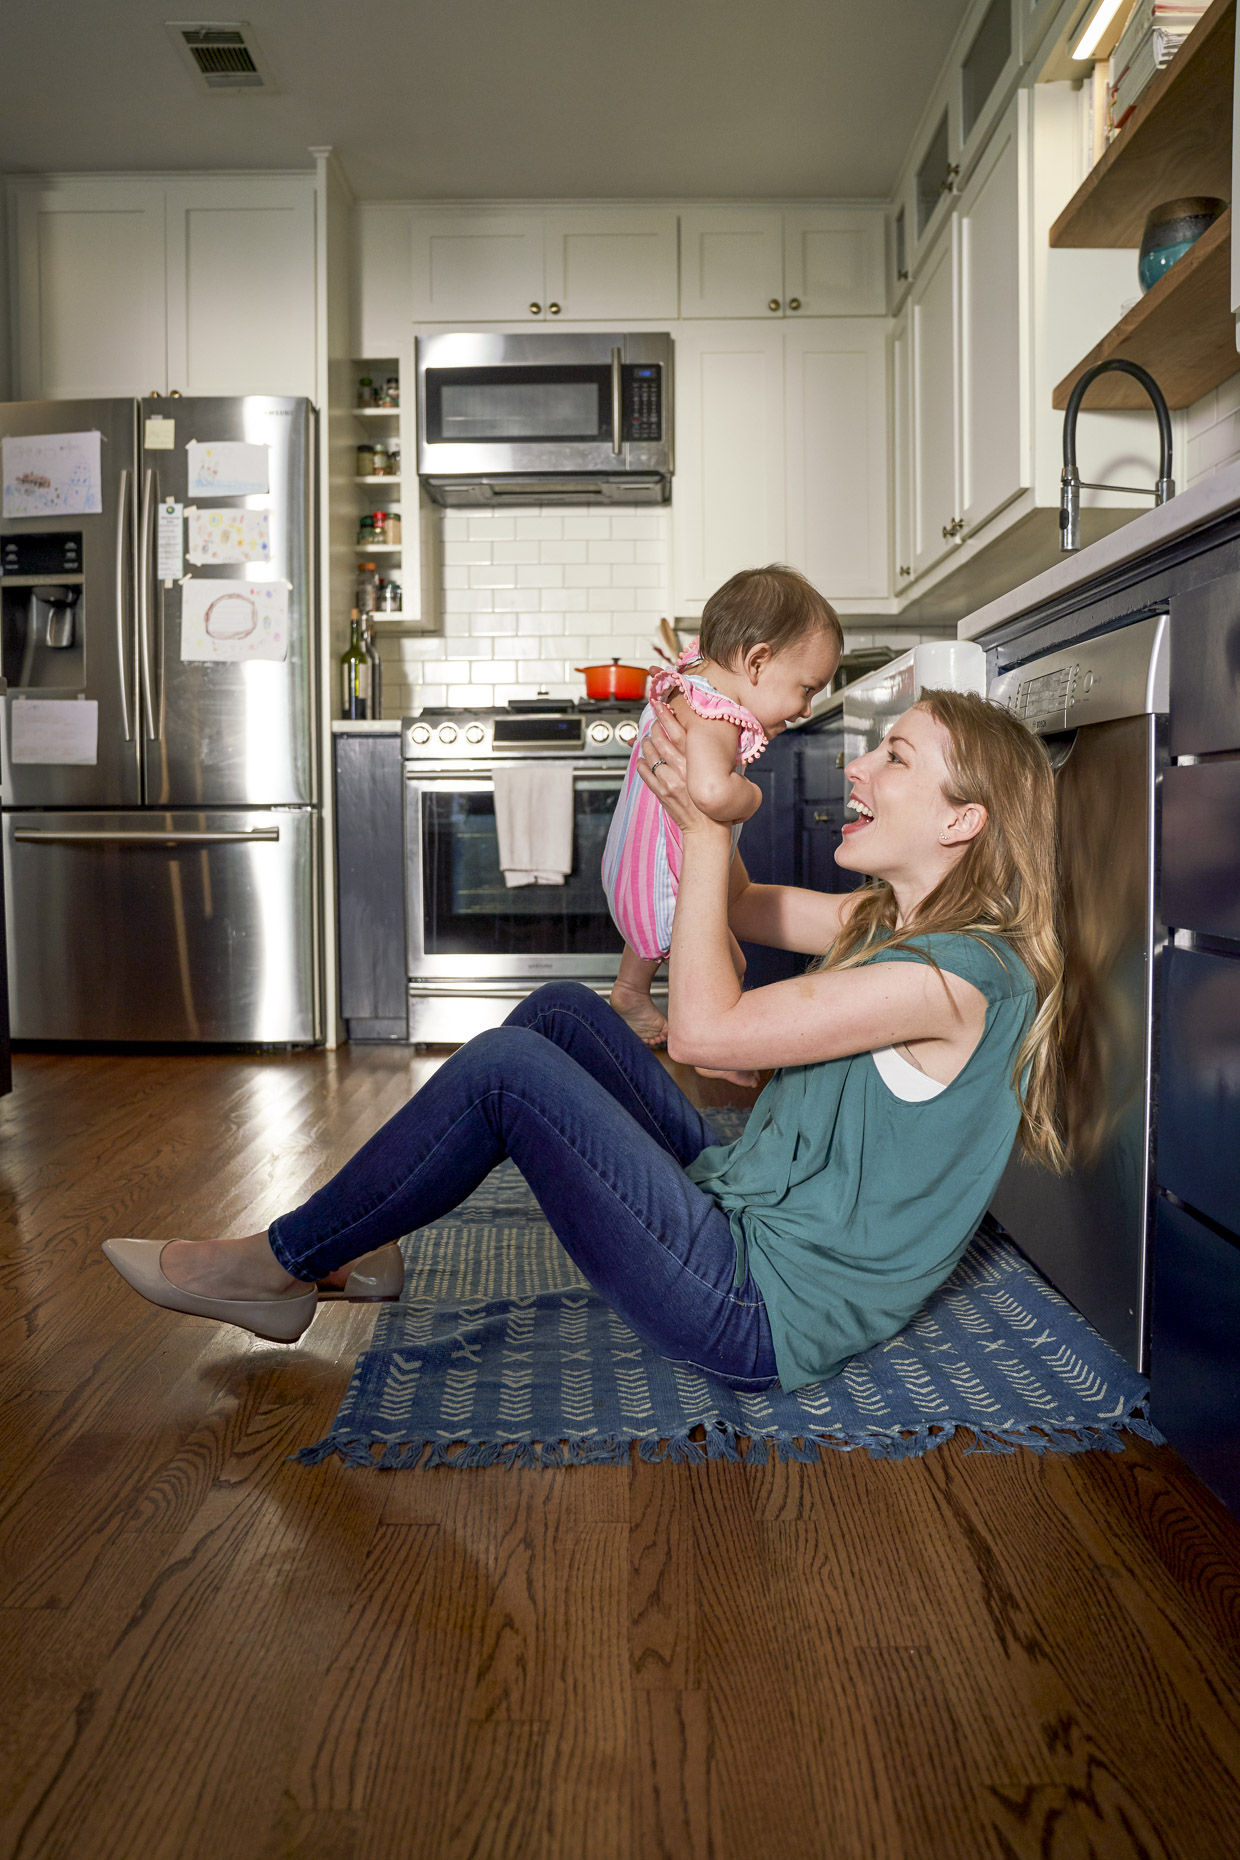 Woman sitting on floor in kitchen playing with baby